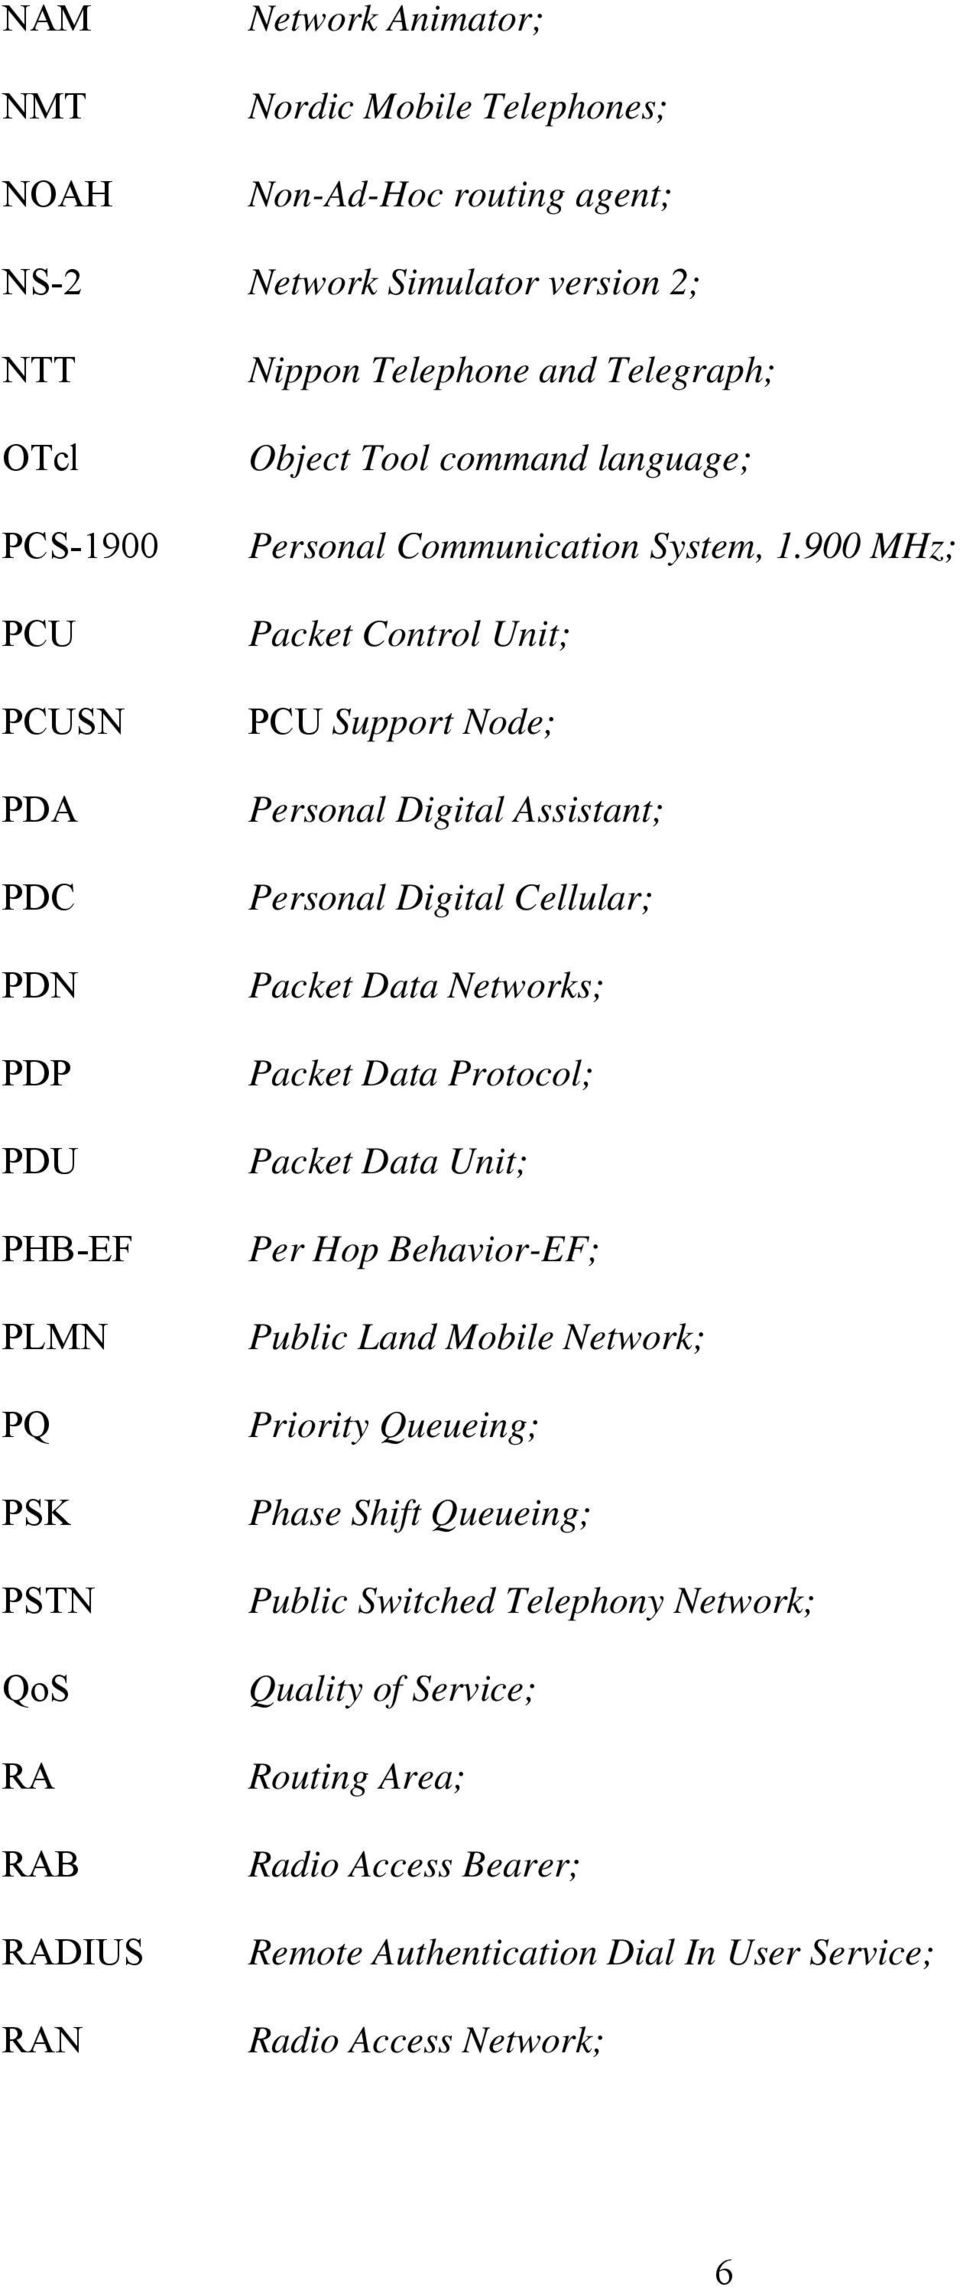 900 MHz; Packet Control Unit; PCU Support Node; Personal Digital Assistant; Personal Digital Cellular; Packet Data Networks; Packet Data Protocol; Packet Data Unit; Per Hop